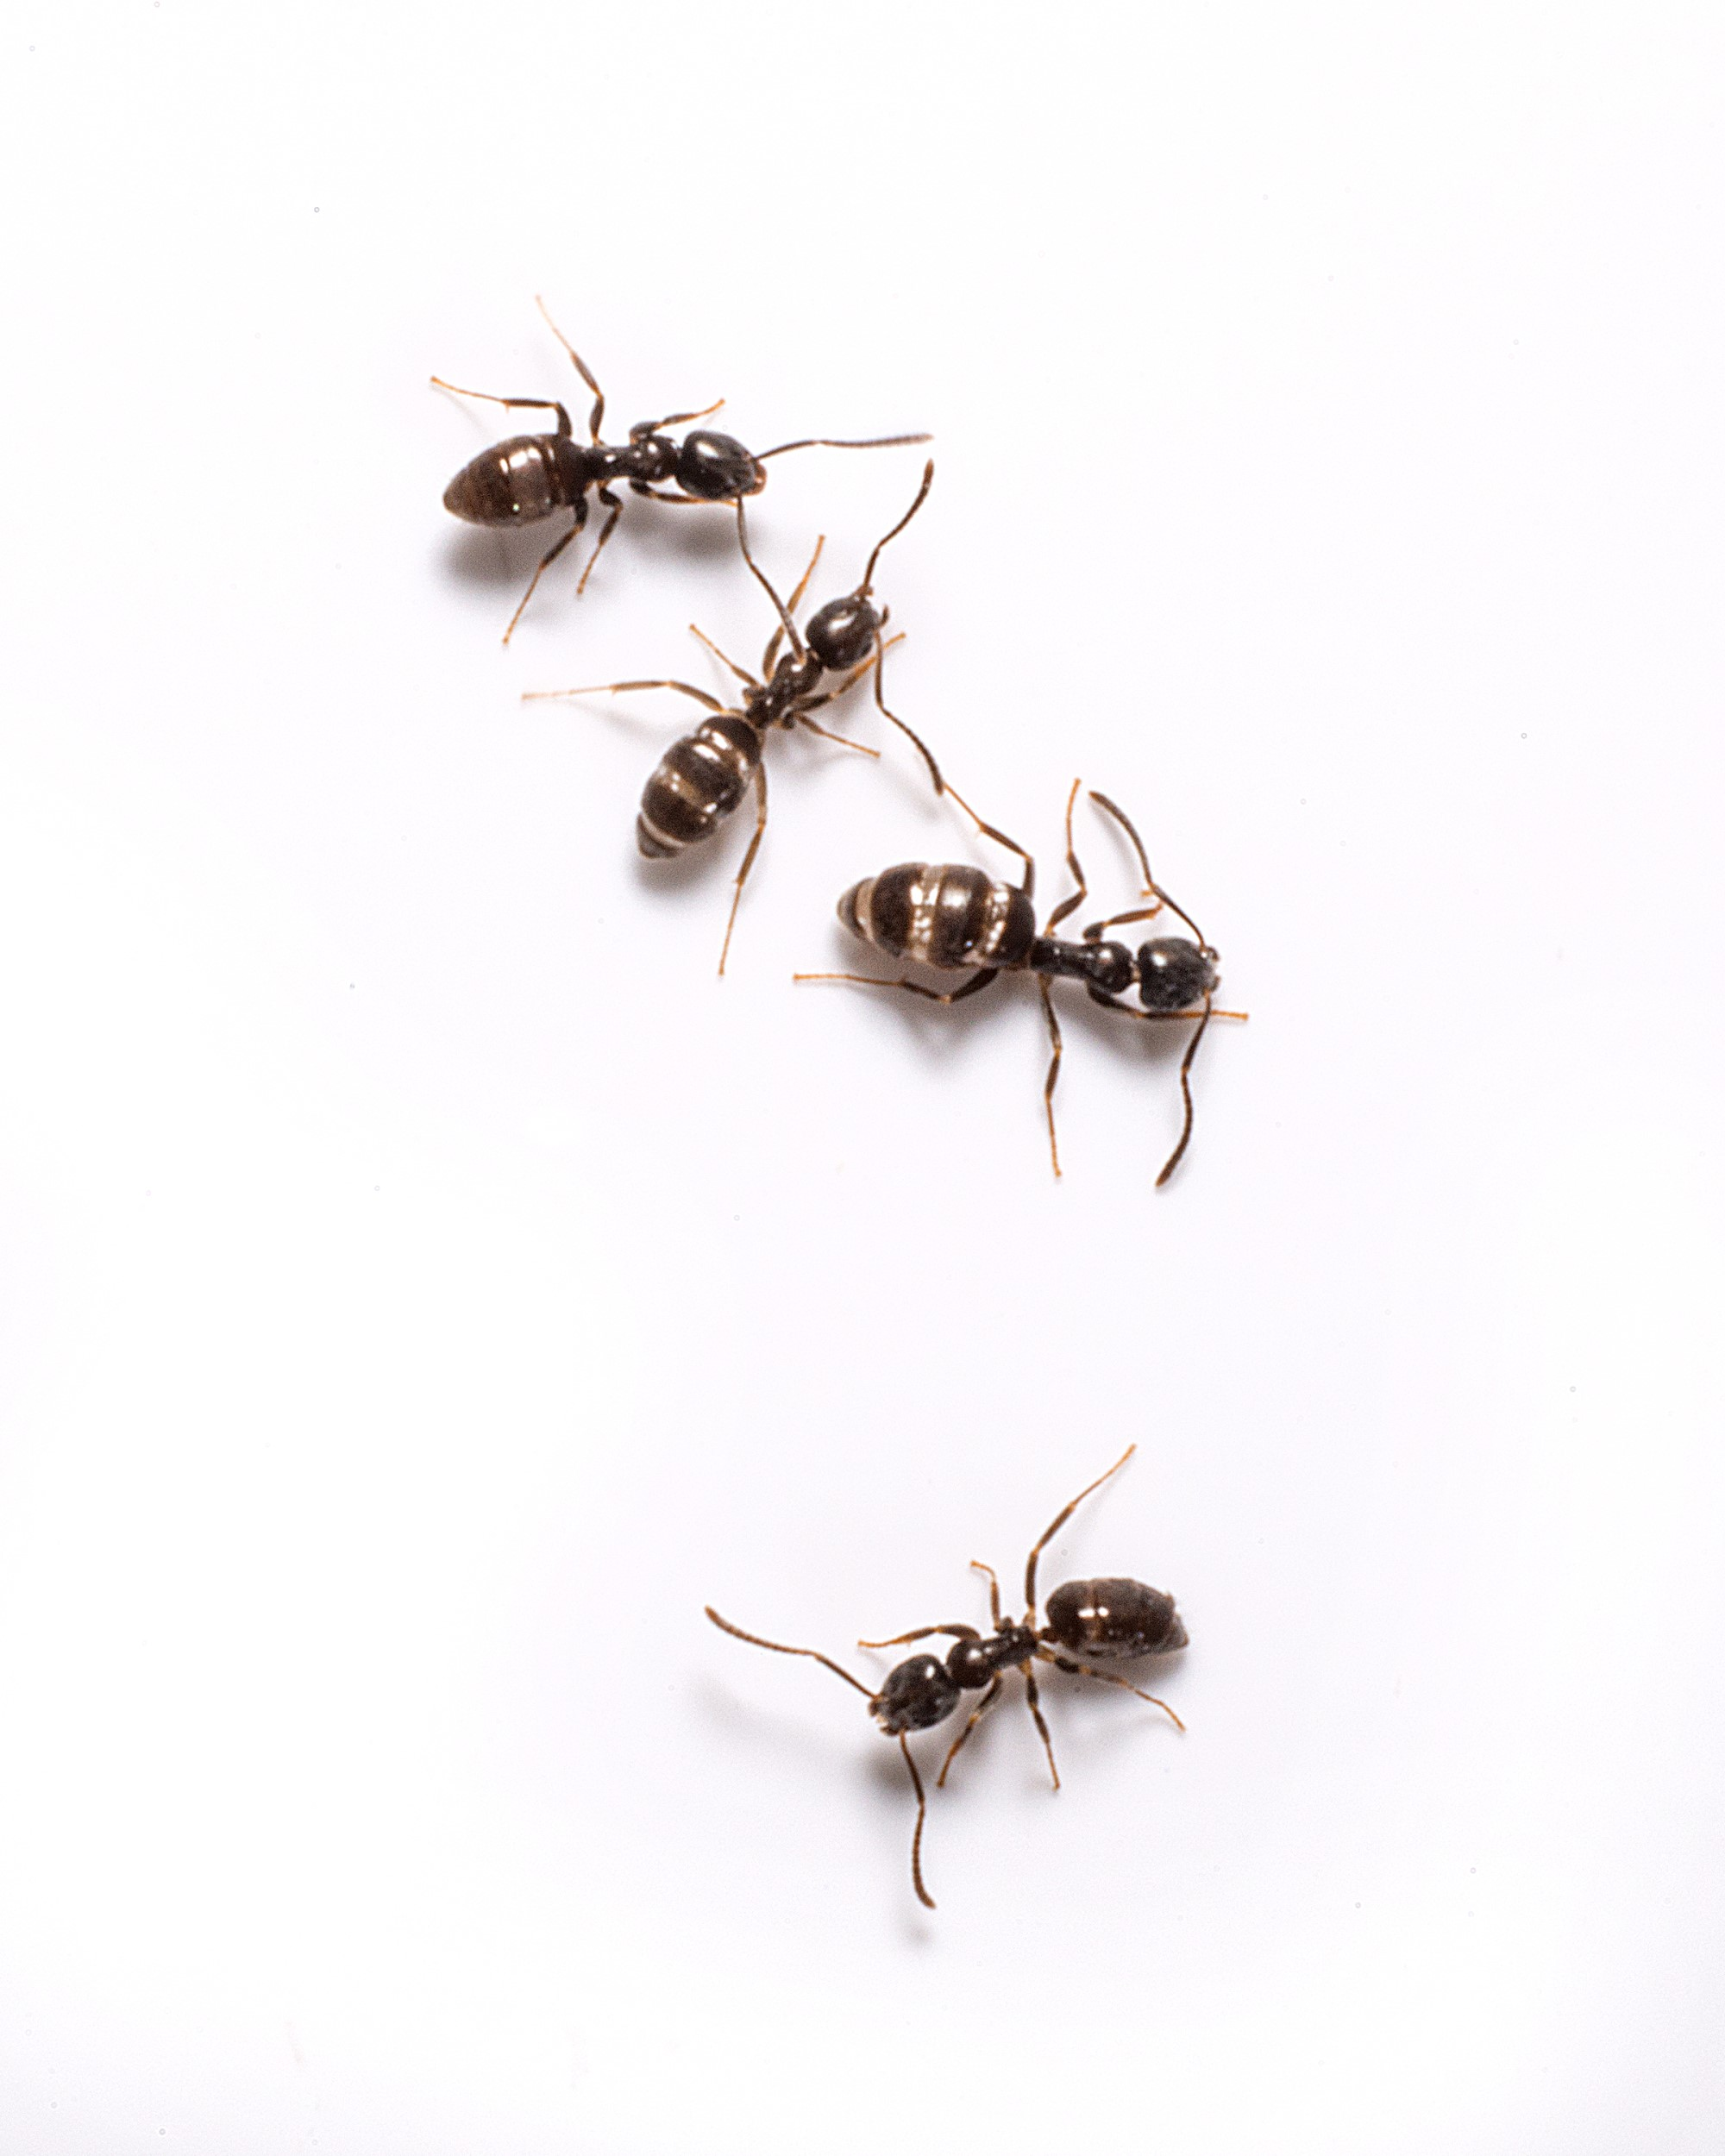 how to get rid of red ants in my house